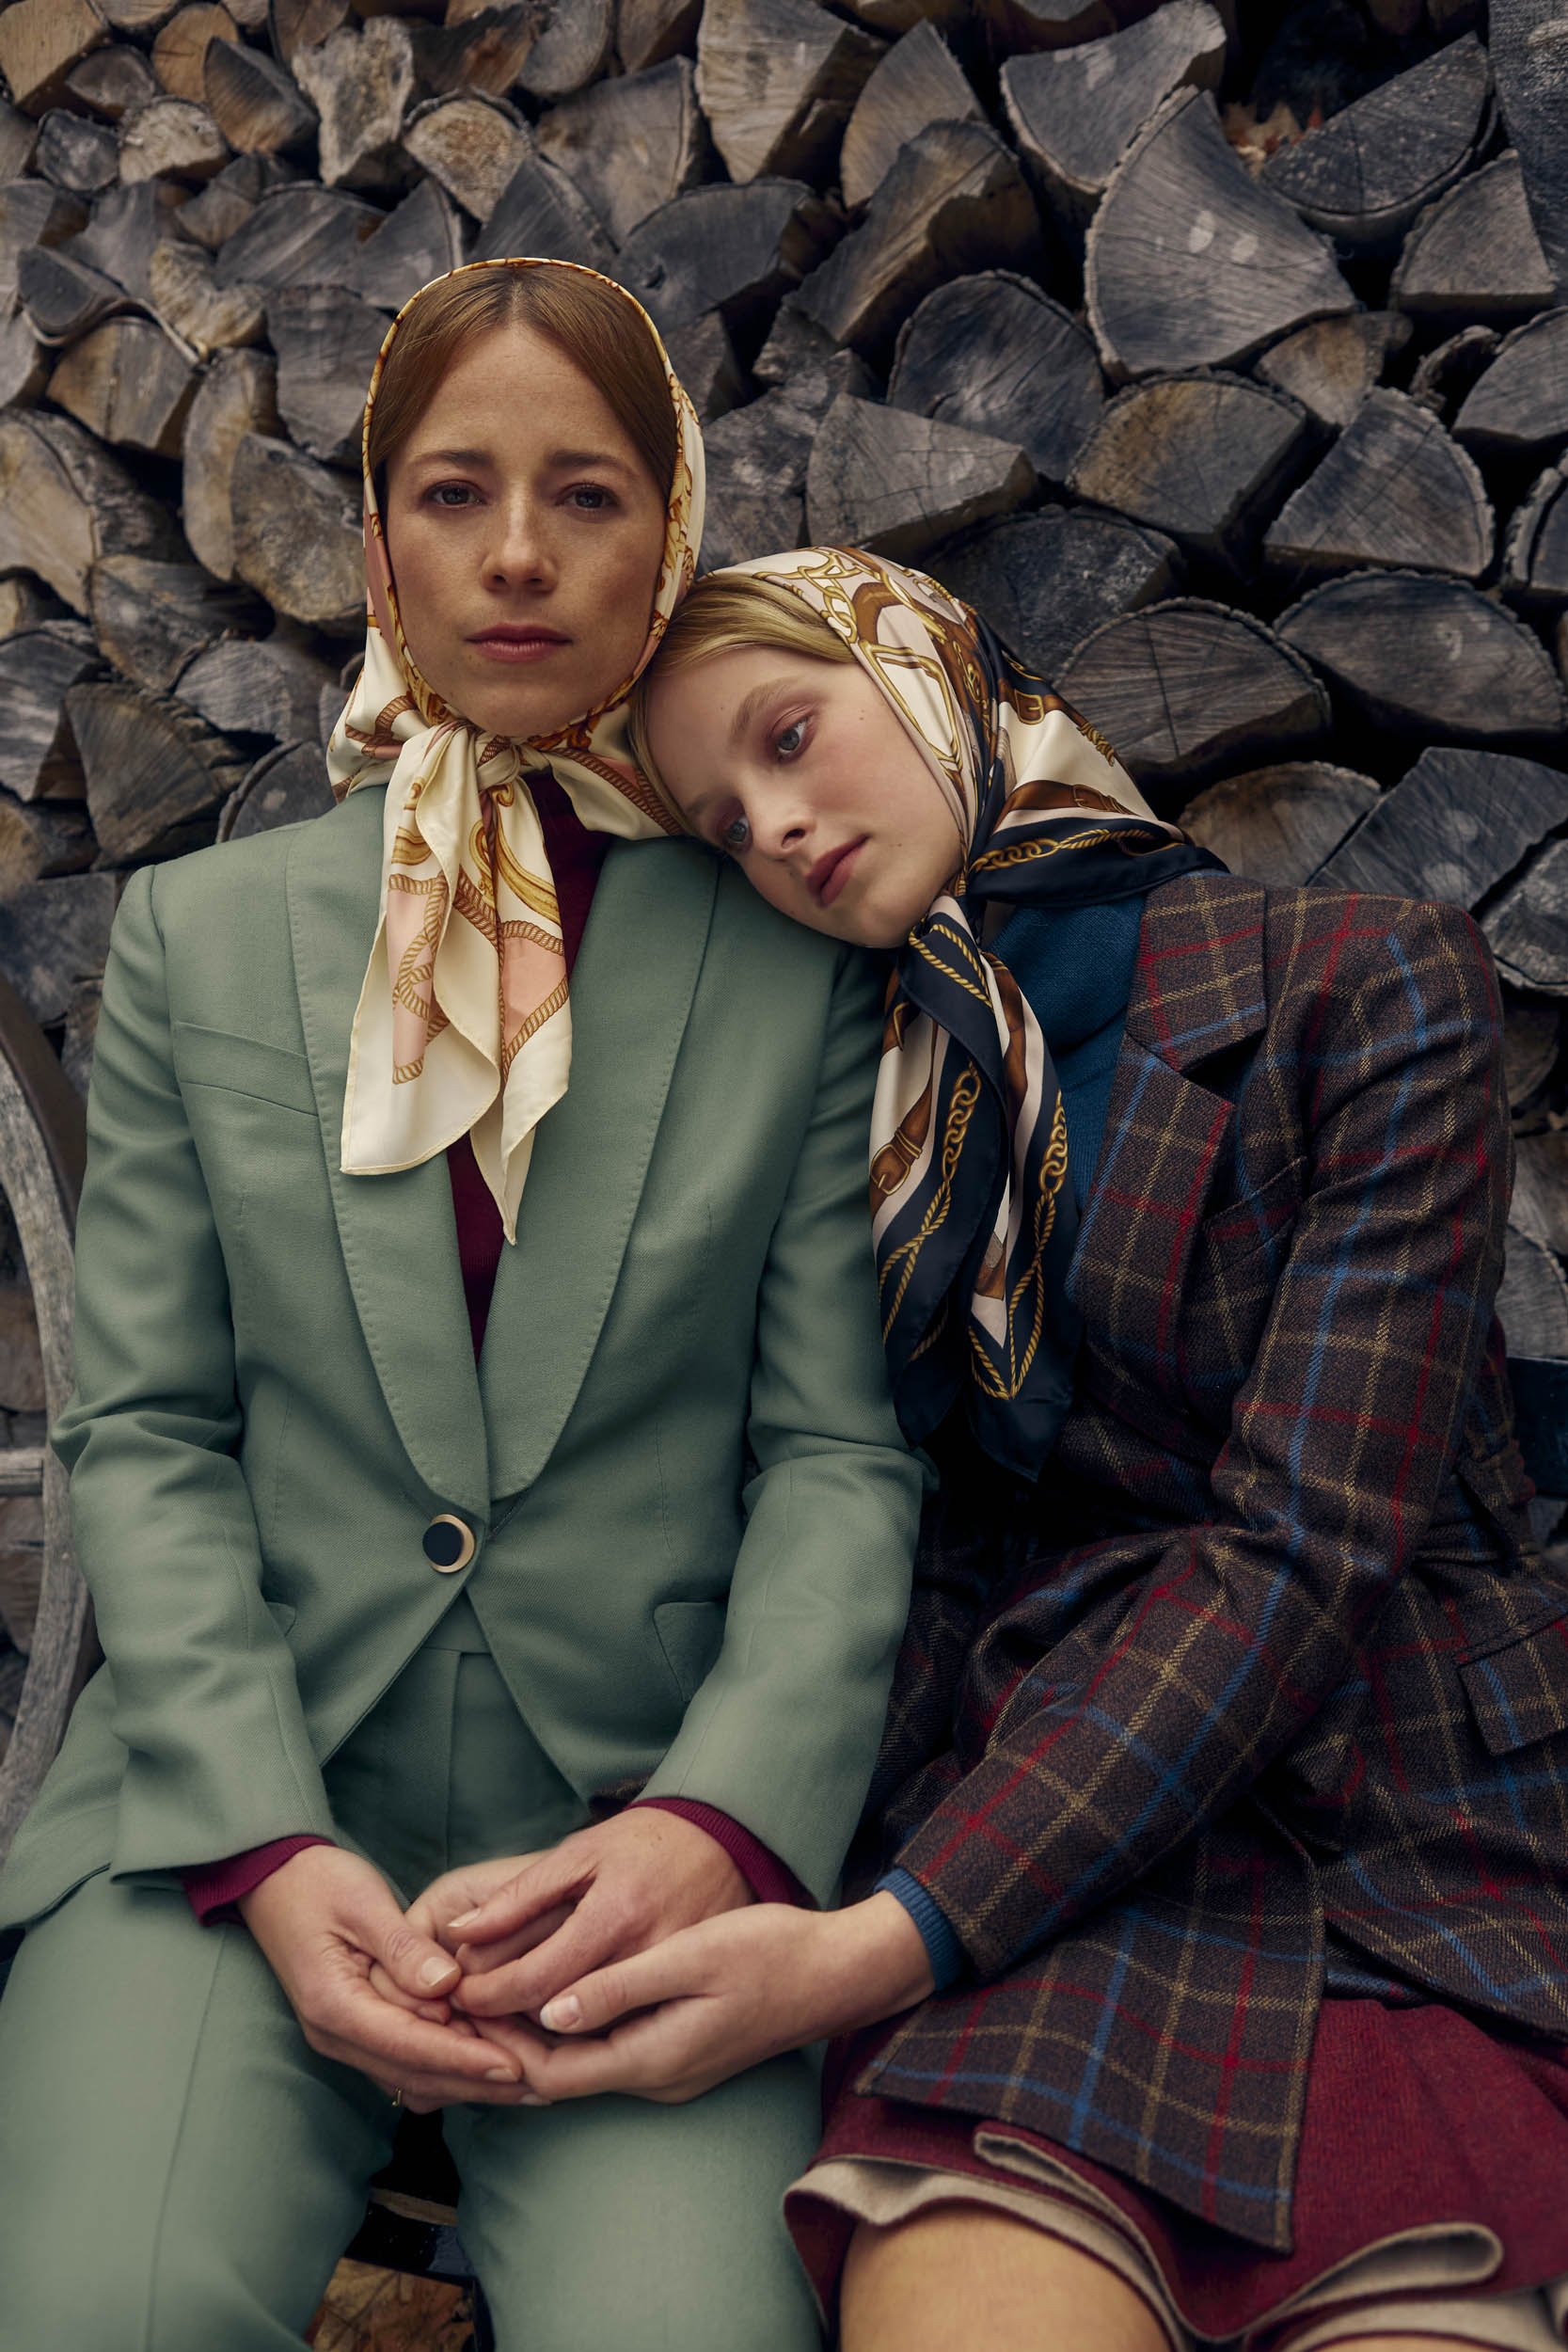 Karine Vanasse and Annabelle wears MAR custom made suits for women